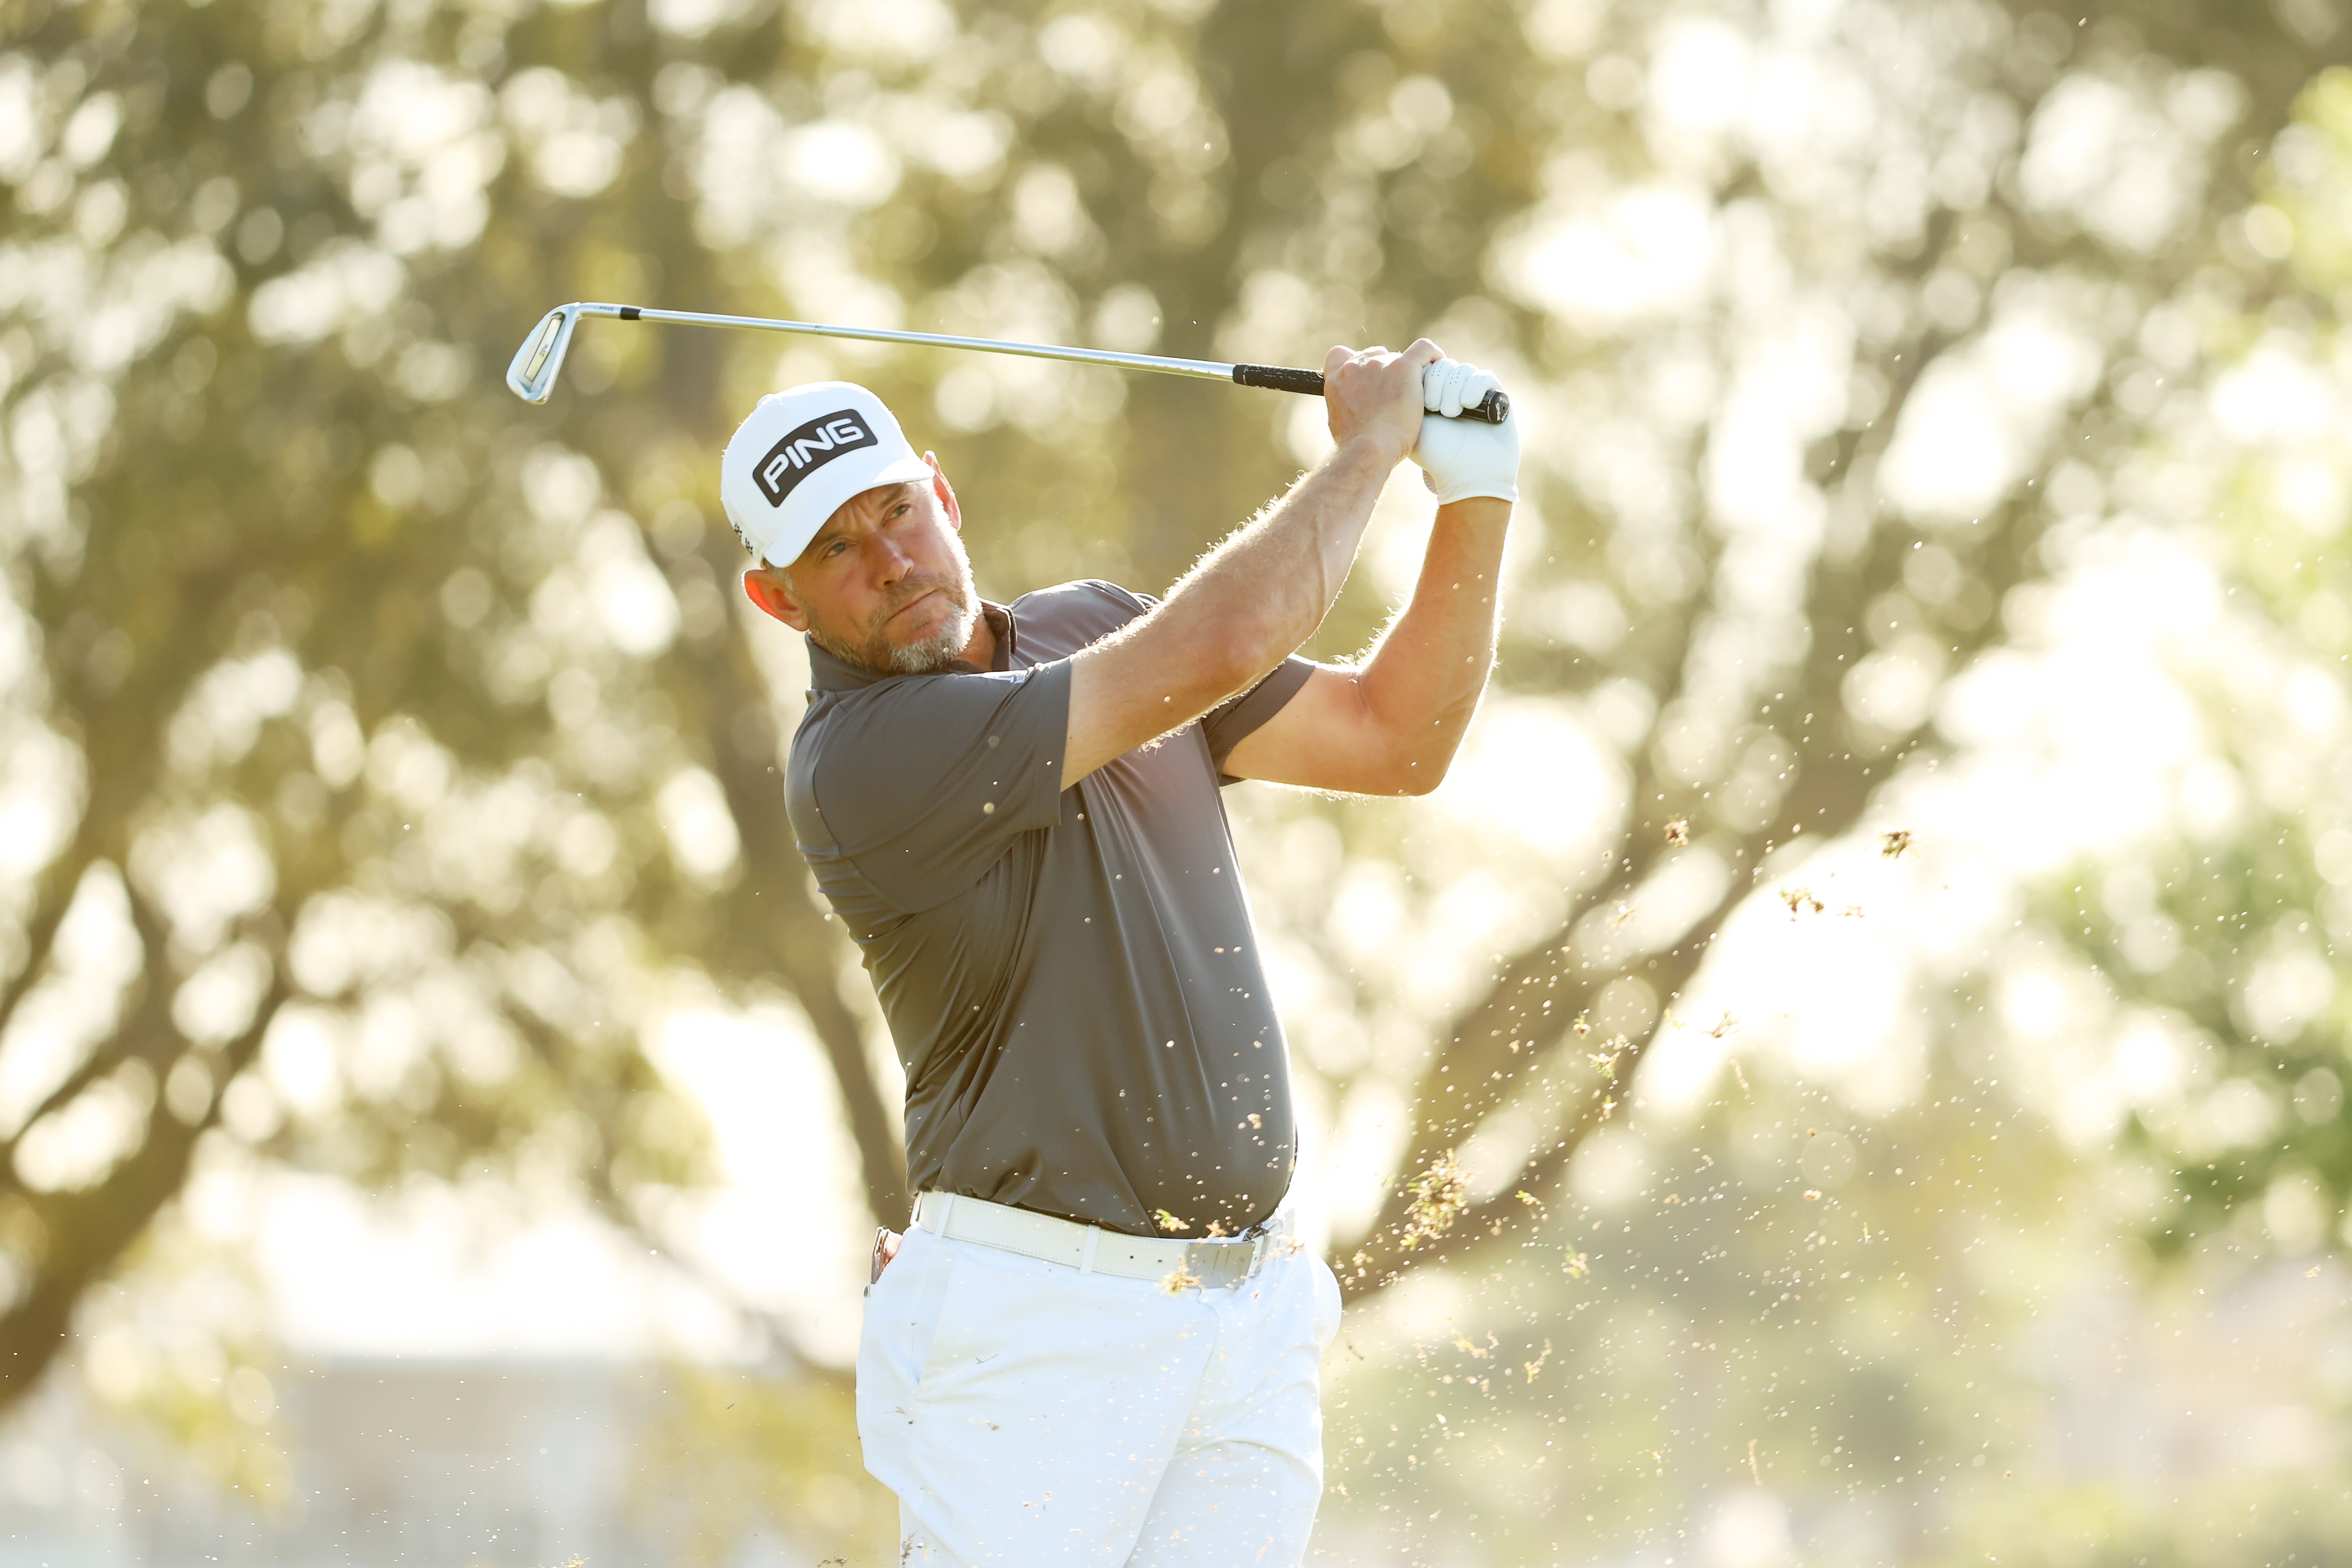 Lee Westwood plays a shot prior to The Honda Classic in 2021